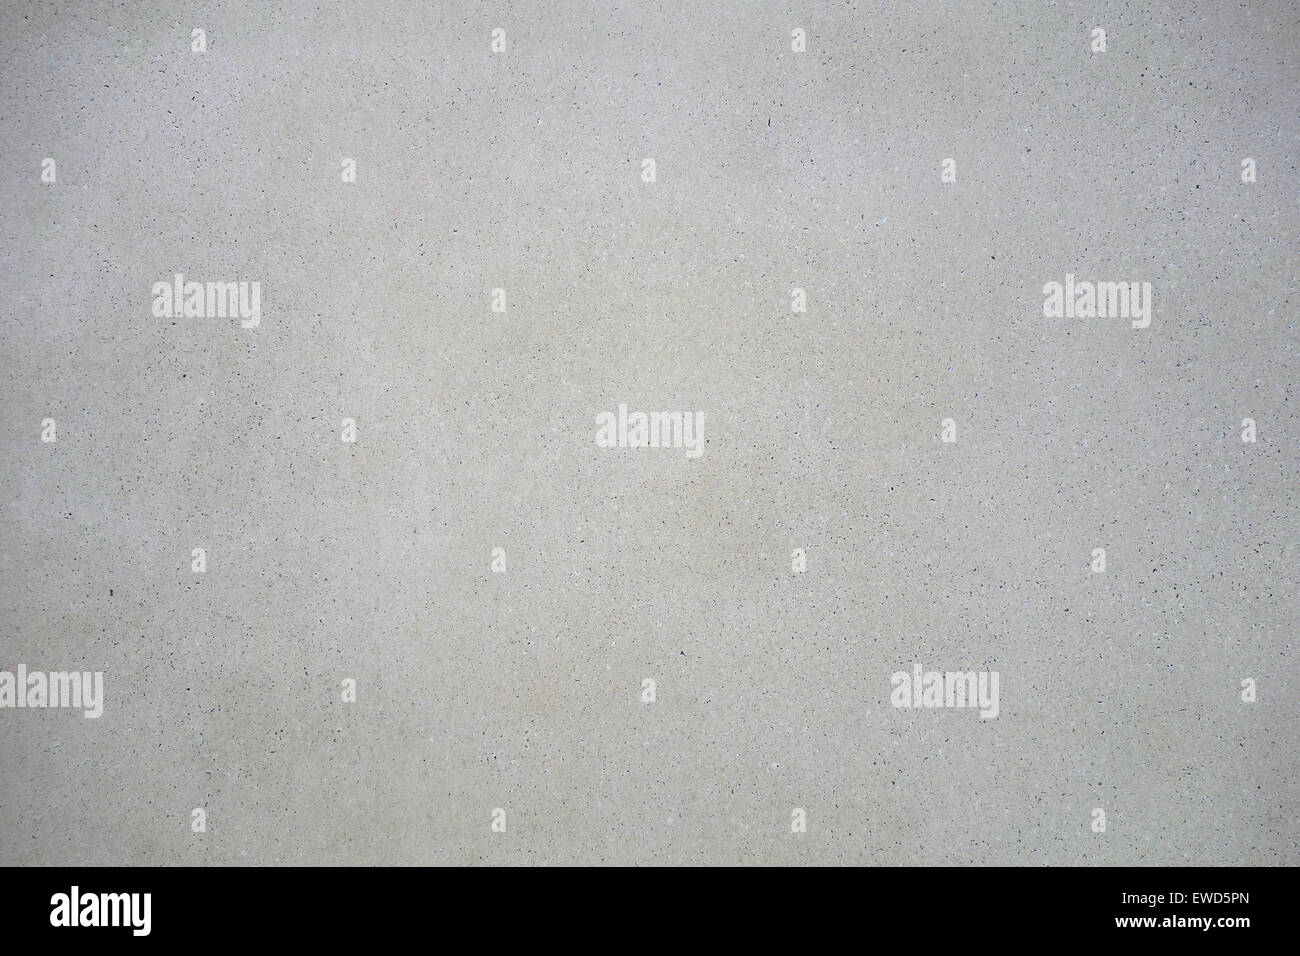 Smooth concrete surface texture background Stock Photo